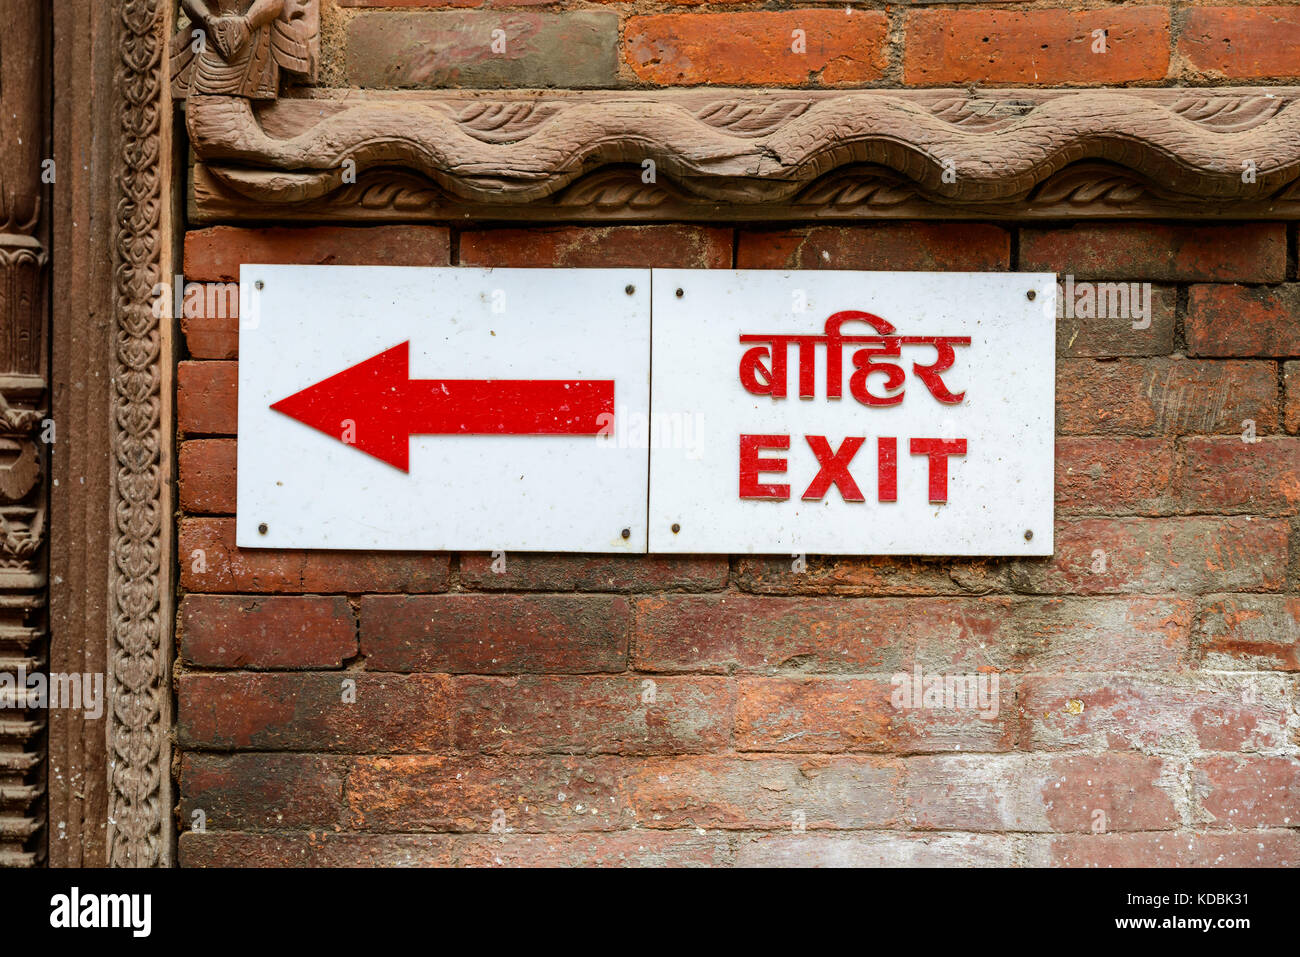 Exit sign and arrow in nepali and english - Stock Image